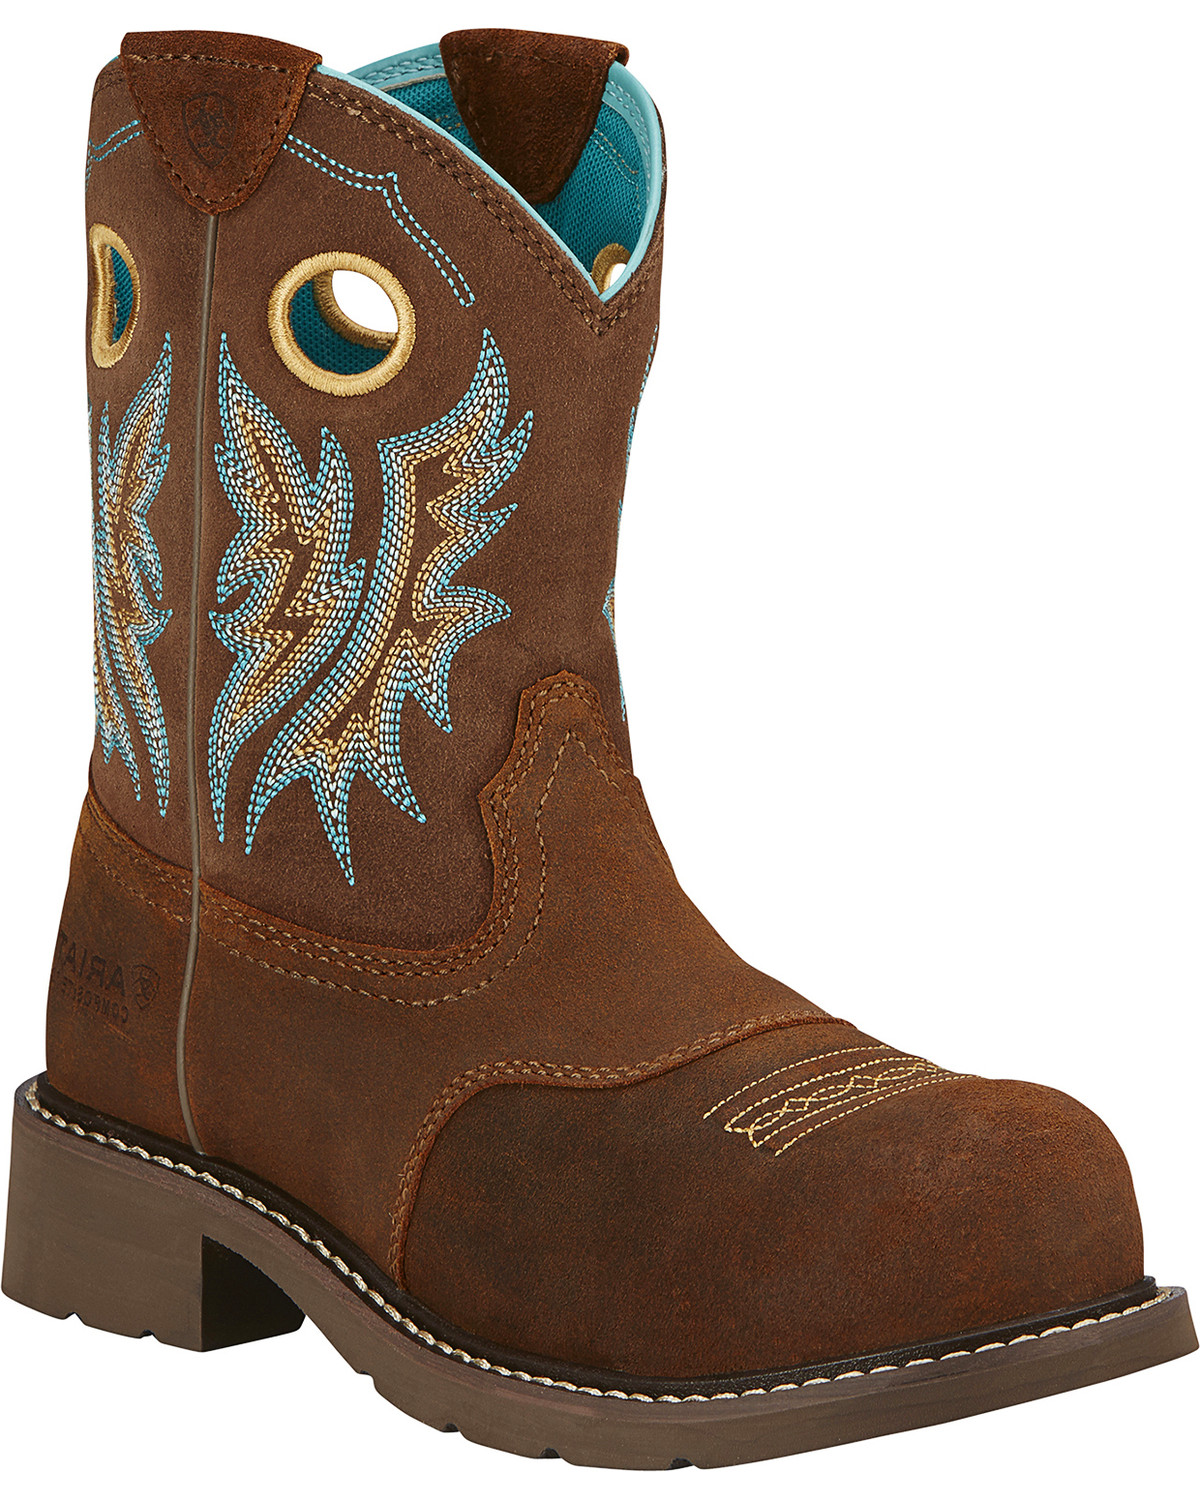 c9bf794625397 Zoomed Image Ariat Women's Fatbaby Cowgirl Western Work Boots, Tan, ...